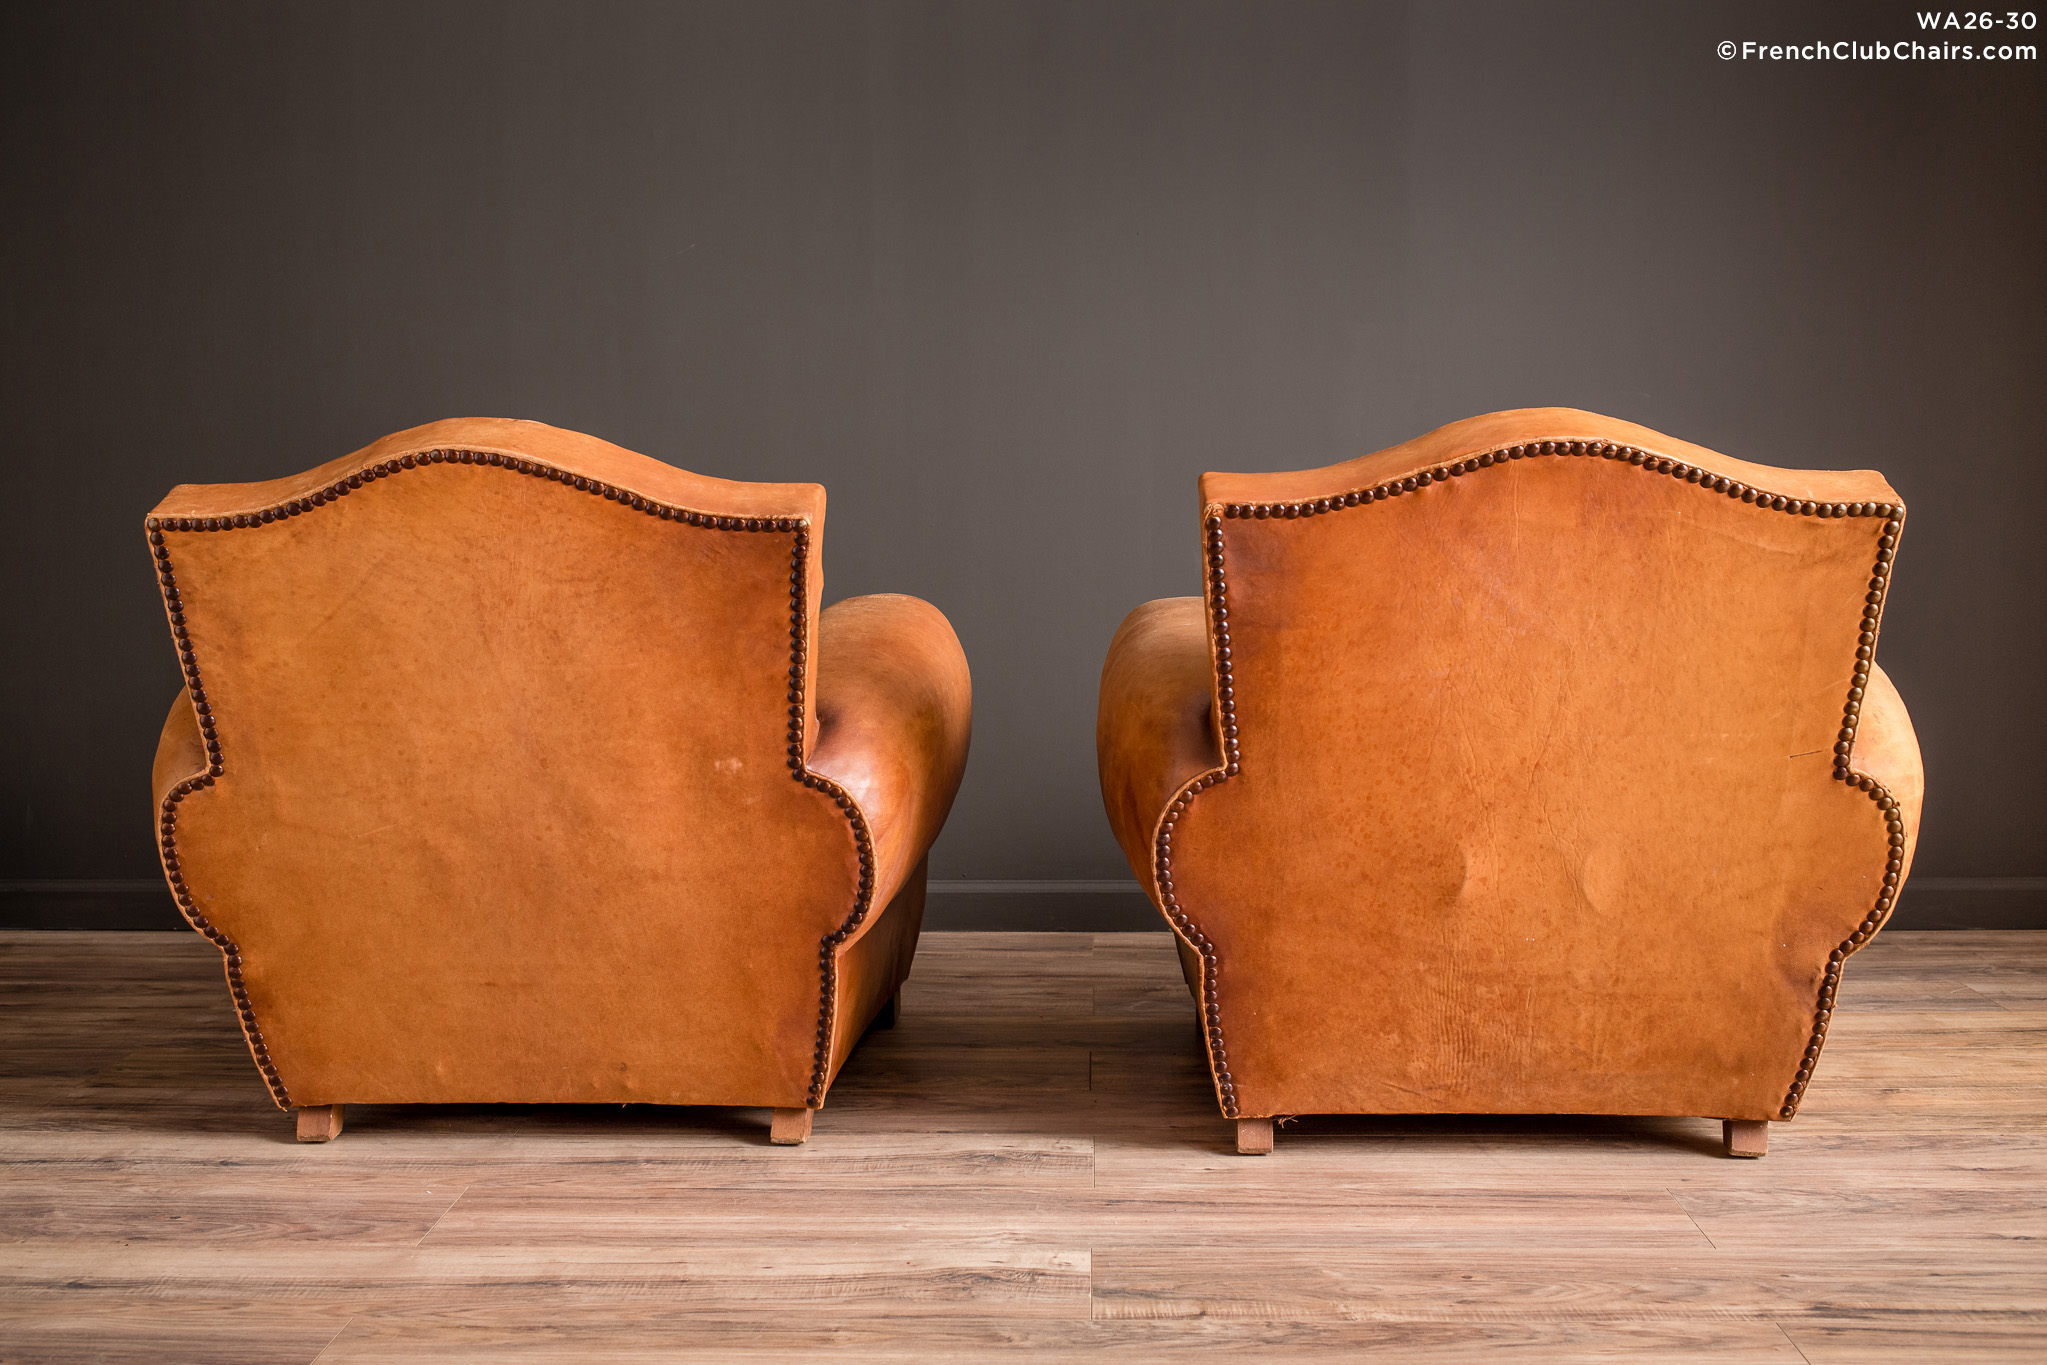 WA_26-30_Giverny_Gendarme_Light_Caramel_Pair_R_2BK-v01-williams-antiks-leather-french-club-chair-wa_fcccom